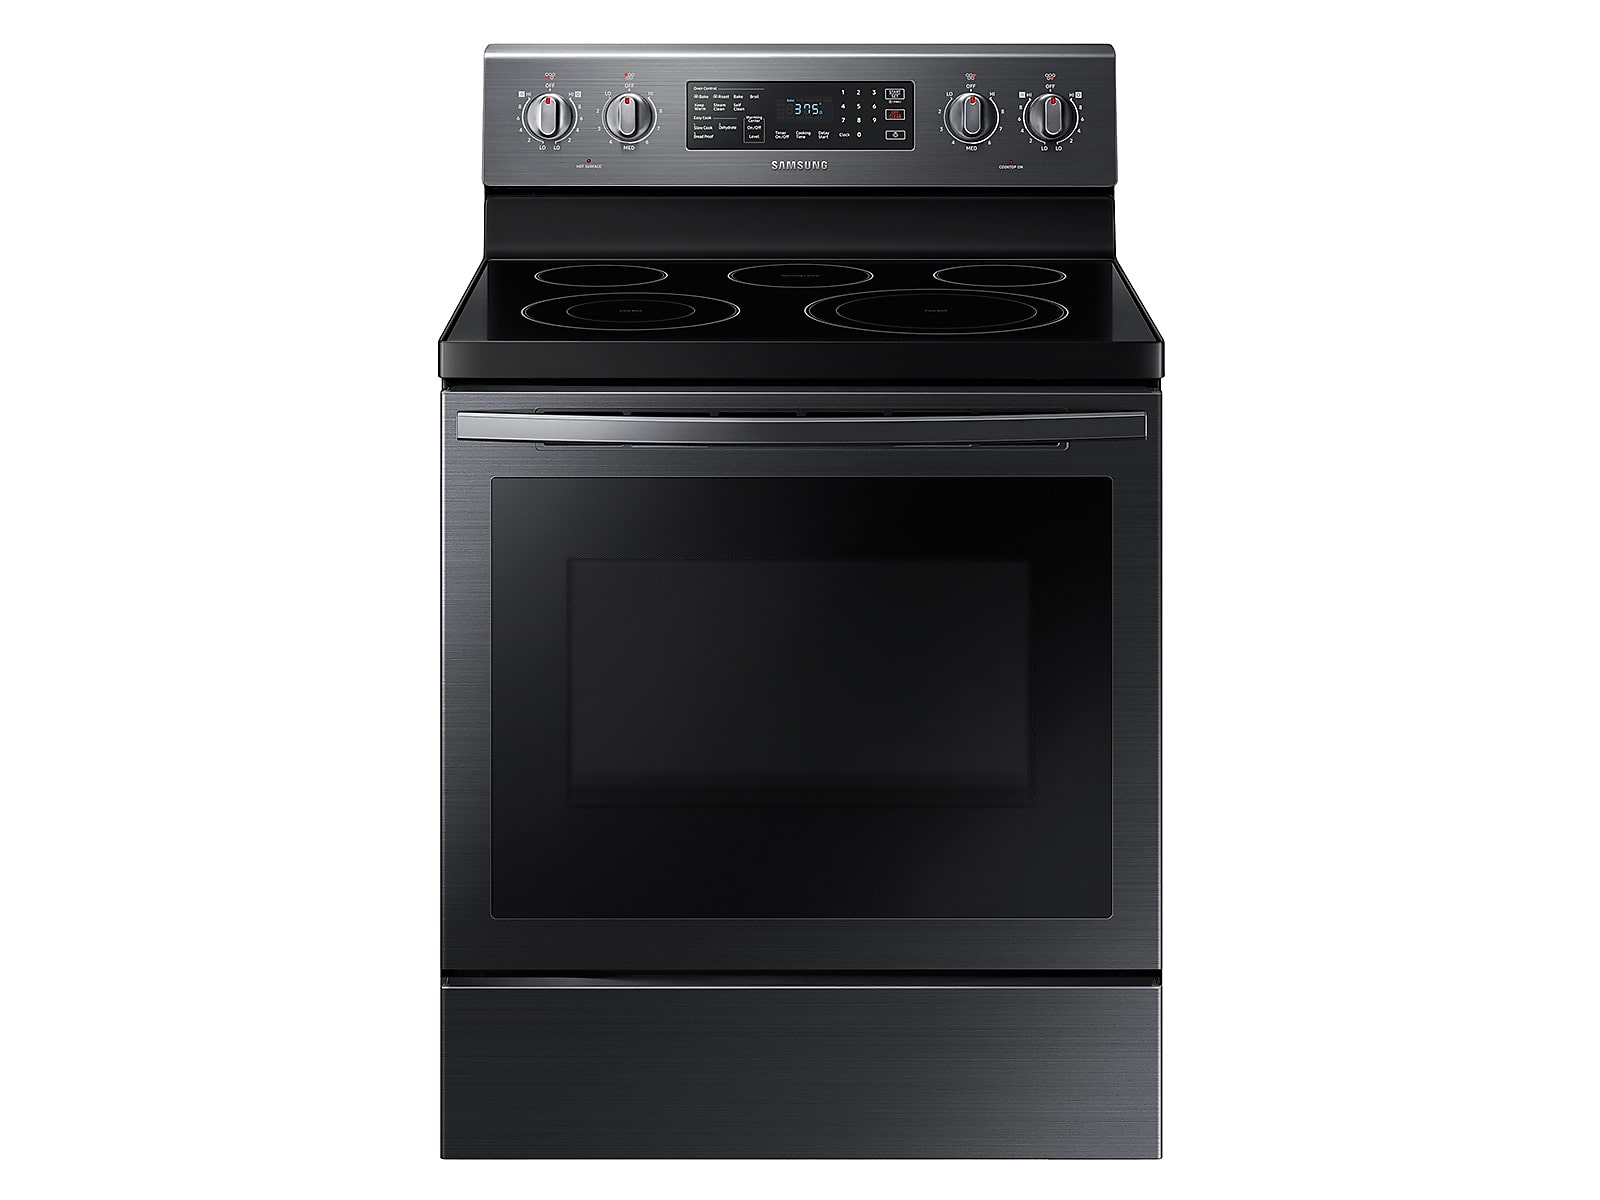 Samsung 5.9 cu. ft. Freestanding Electric Range with Air Fry and Convection in Black Stainless Steel(NE59T7511SG/AA)